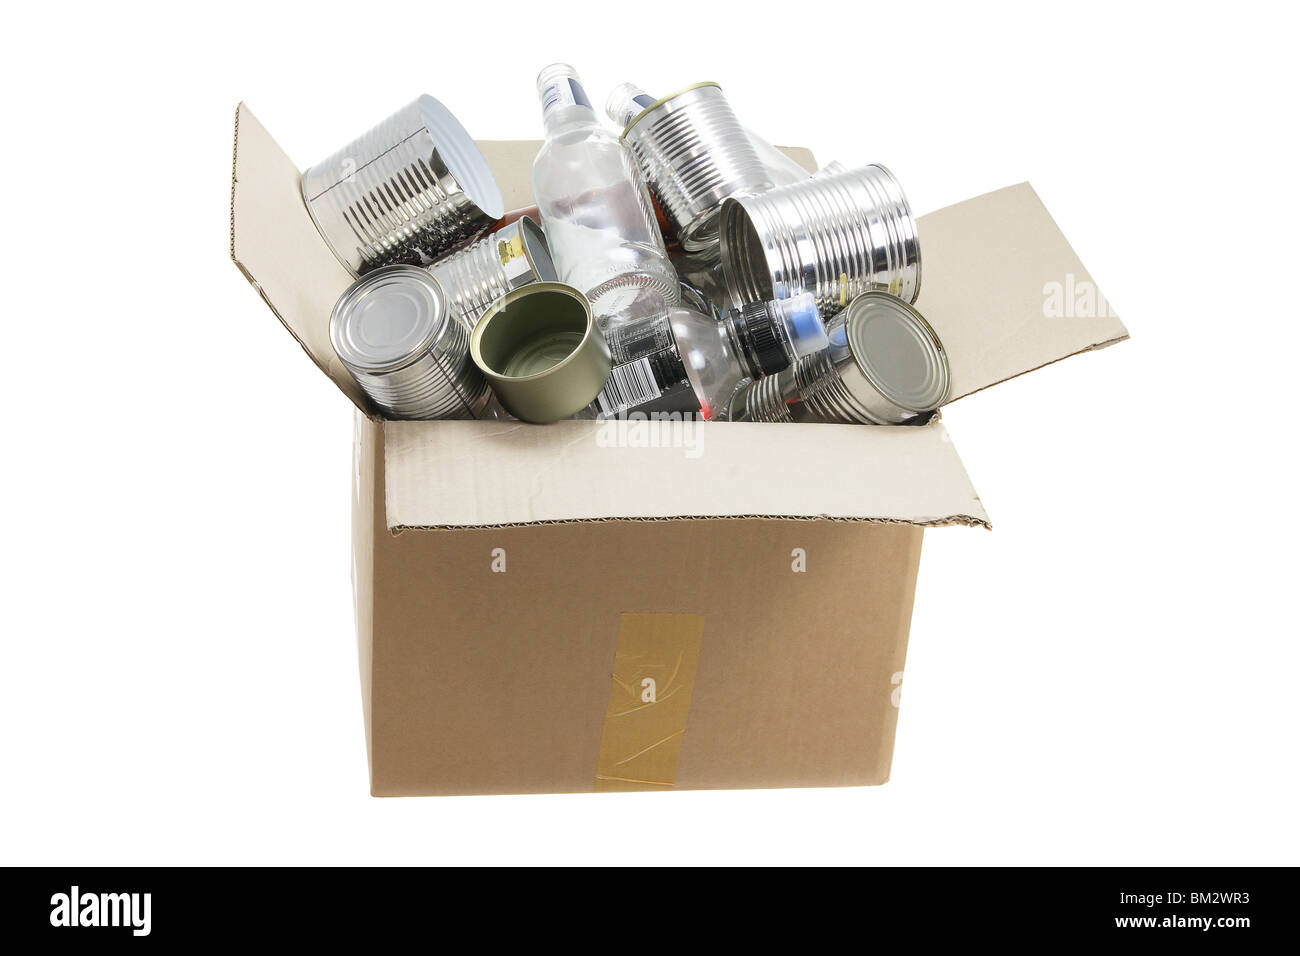 Box of Rubbish for Recycling - Stock Image